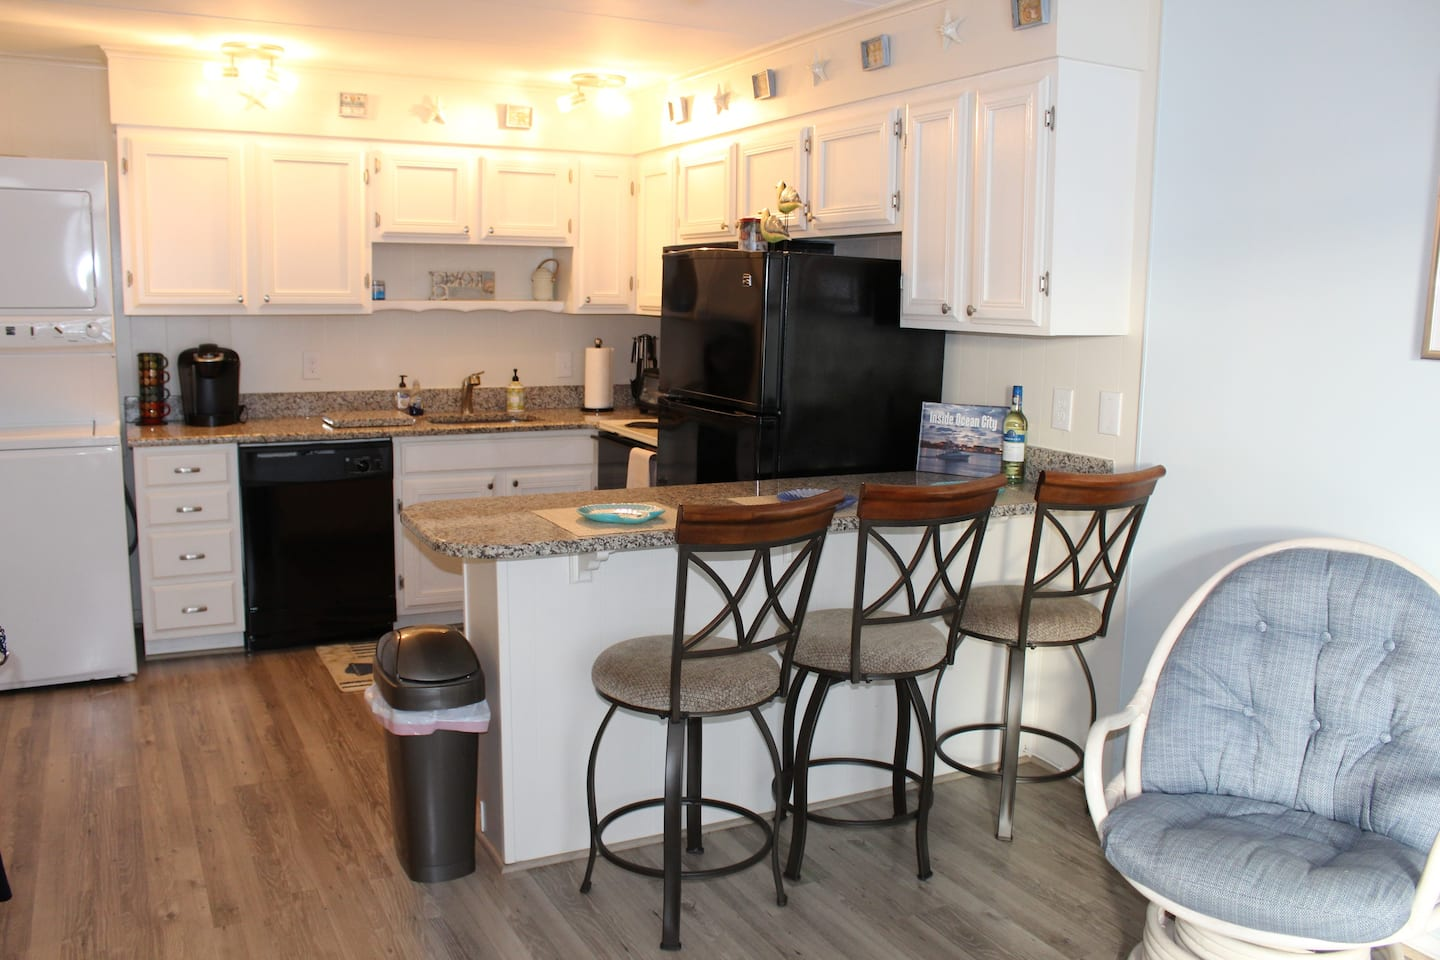 ocean city maryland airbnb